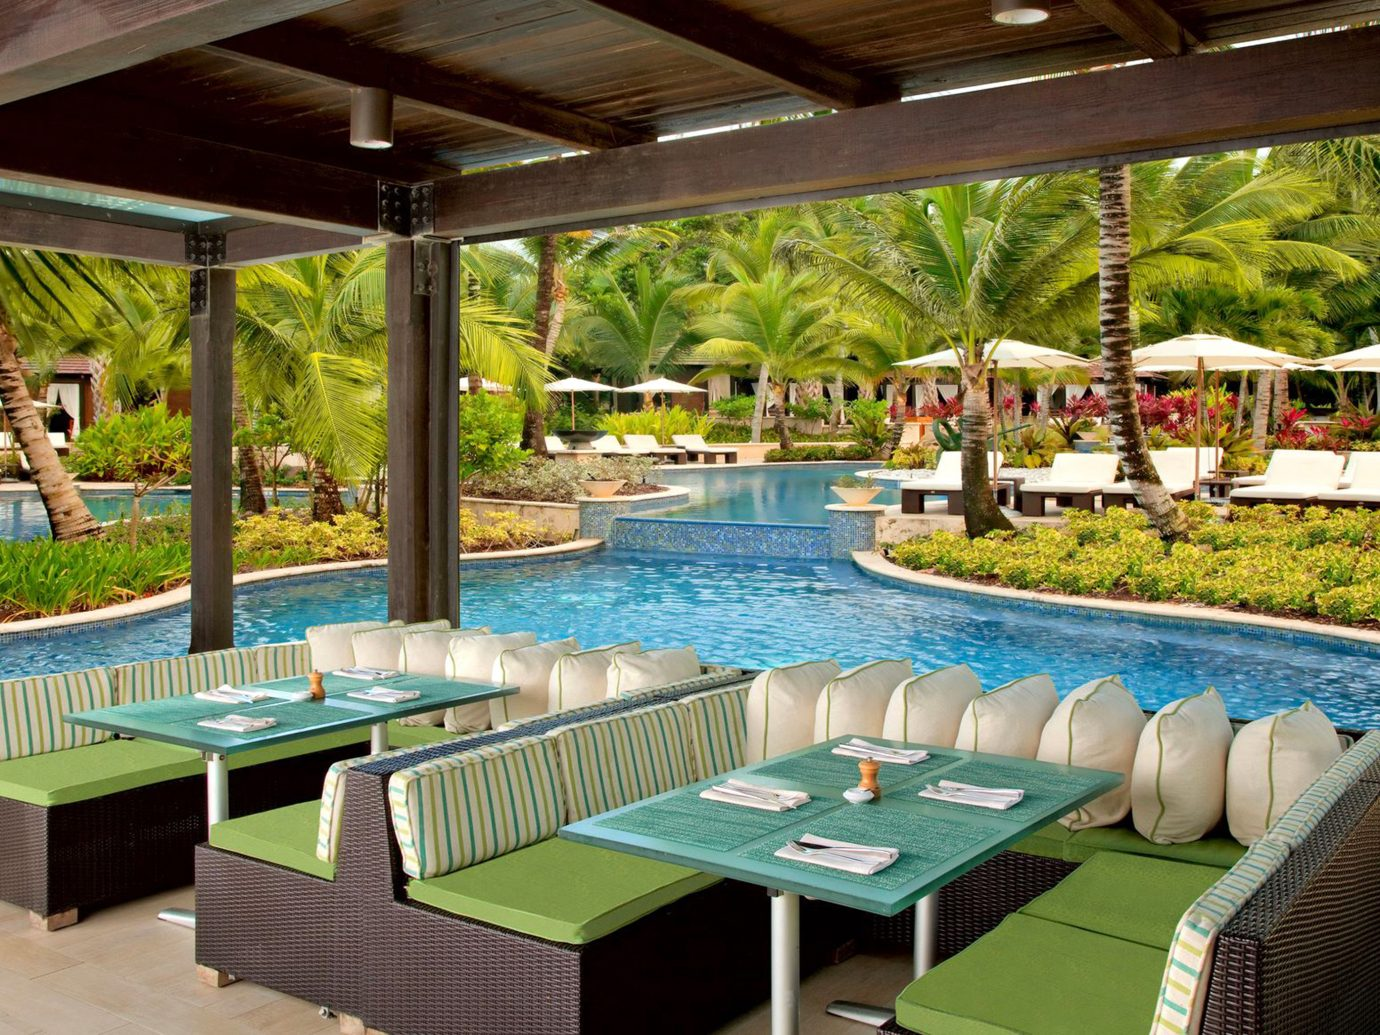 Dining Drink Eat Hotels Luxury Play Pool Resort Trip Ideas table leisure property outdoor swimming pool estate backyard Villa real estate eco hotel restaurant outdoor structure Deck porch set